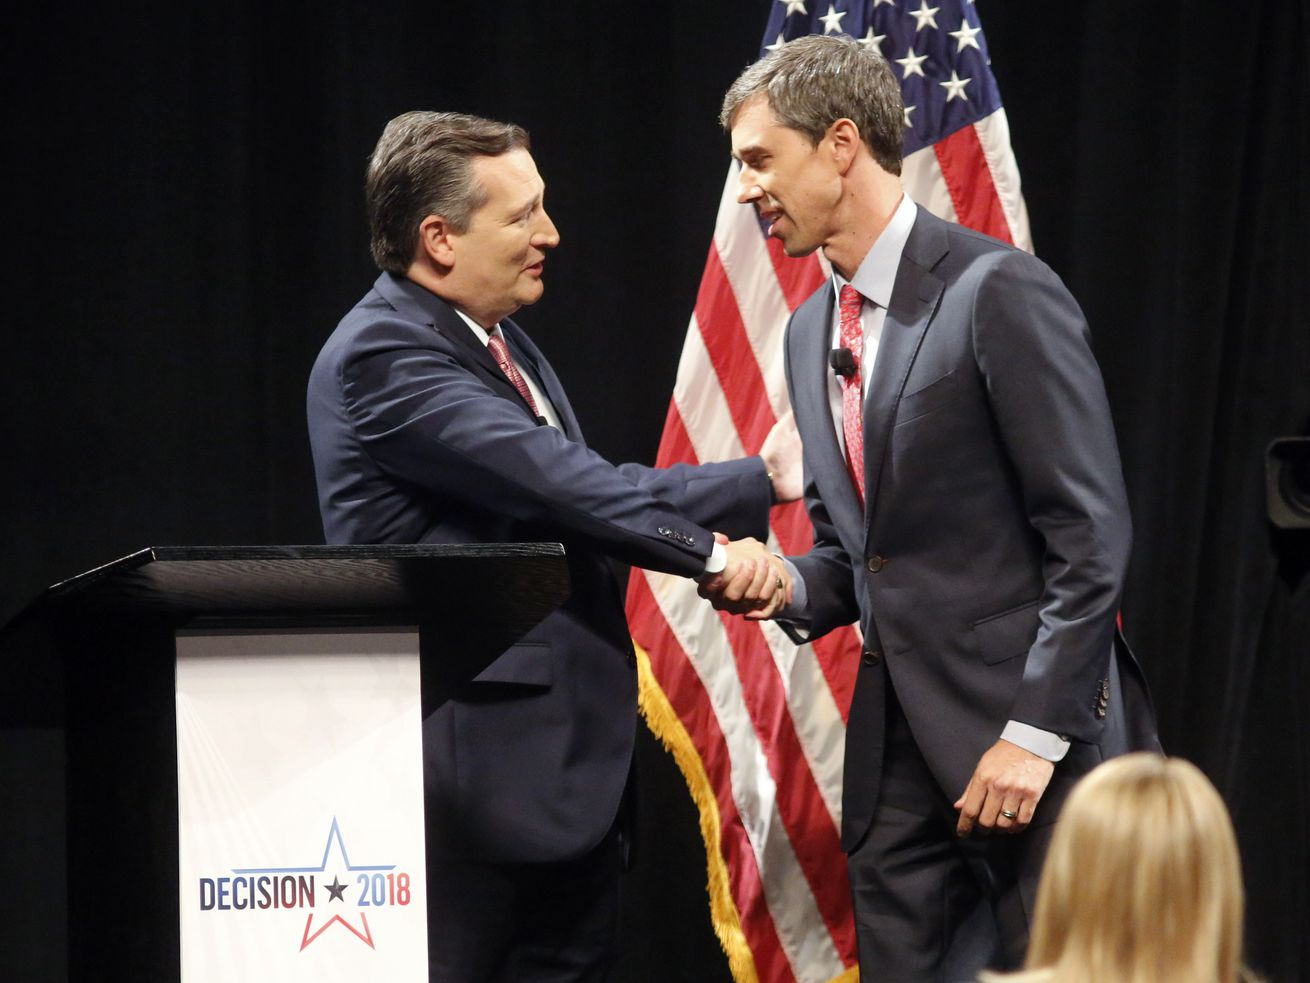 Sen. Ted Cruz (R-TX) shakes hands with Rep. Beto O'Rourke (D-TX) prior to the start of a debate